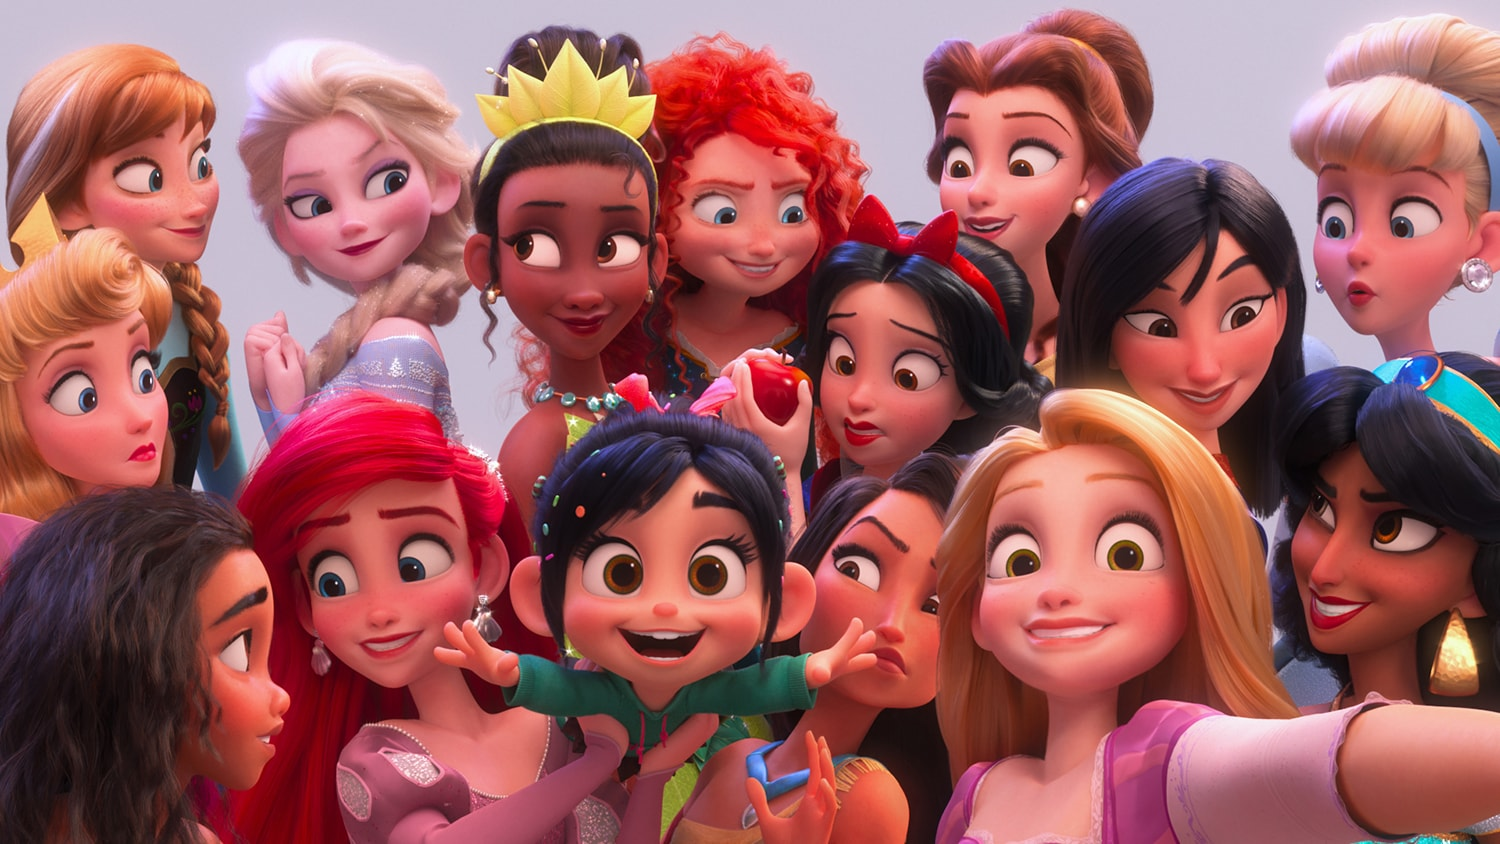 Ralph Breaks the Internet showcase image 16